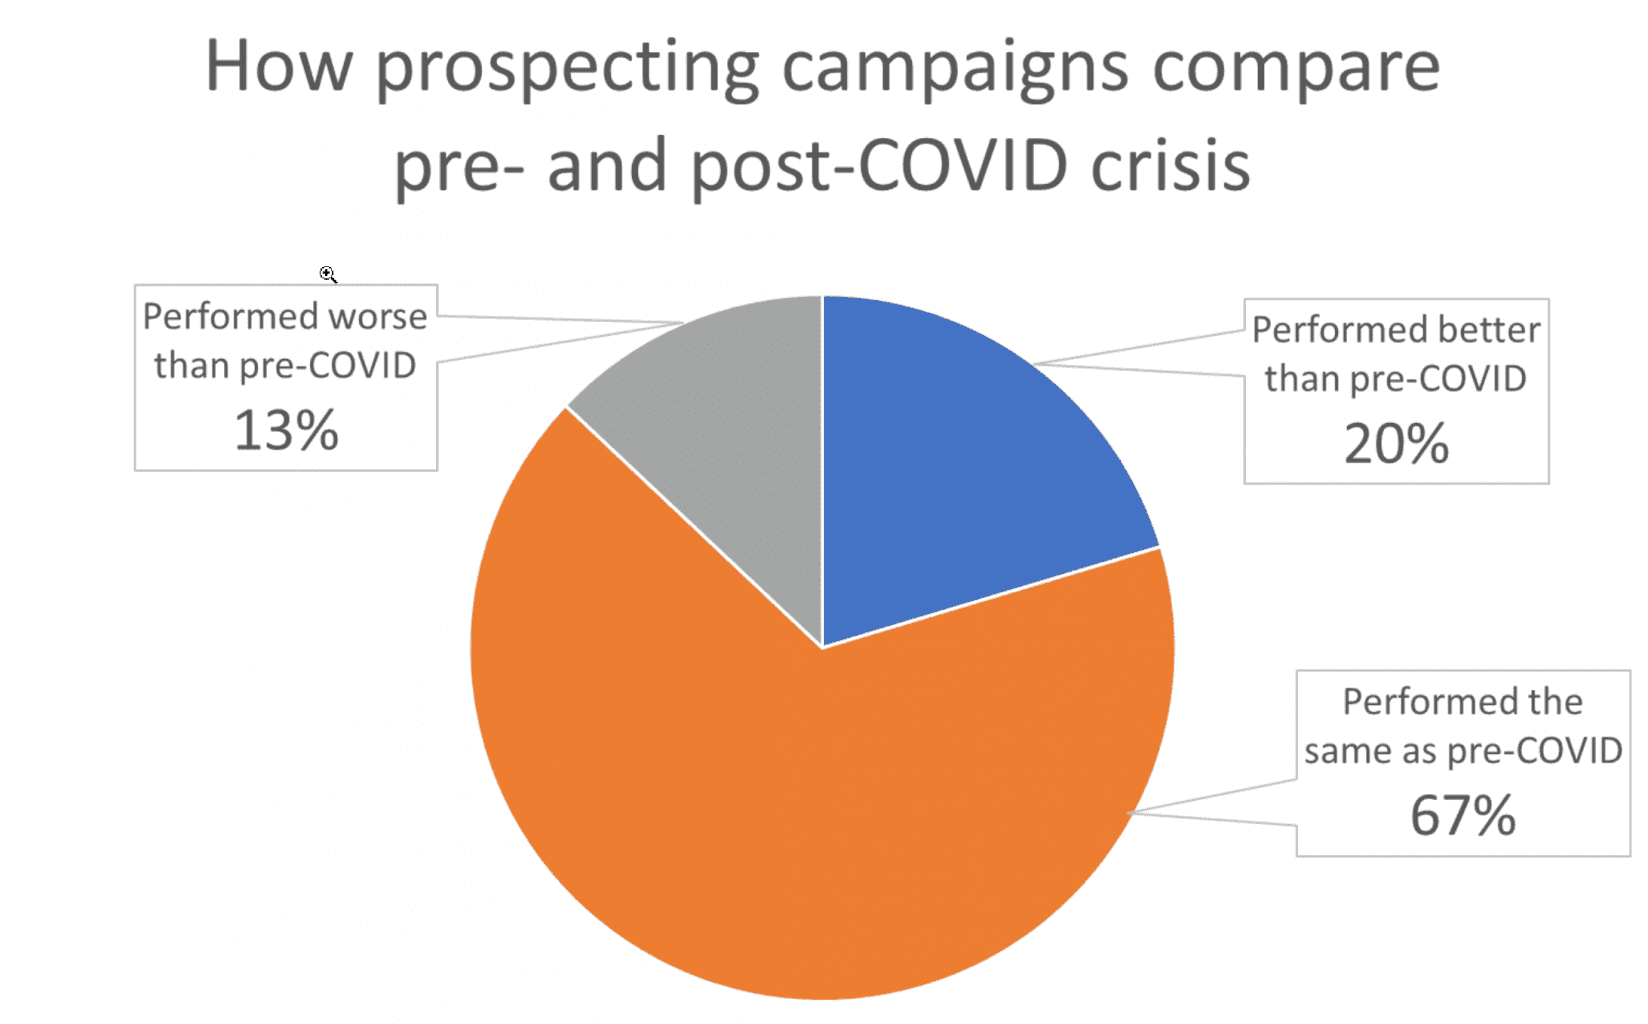 A graph showing prospecting results before and during COVID